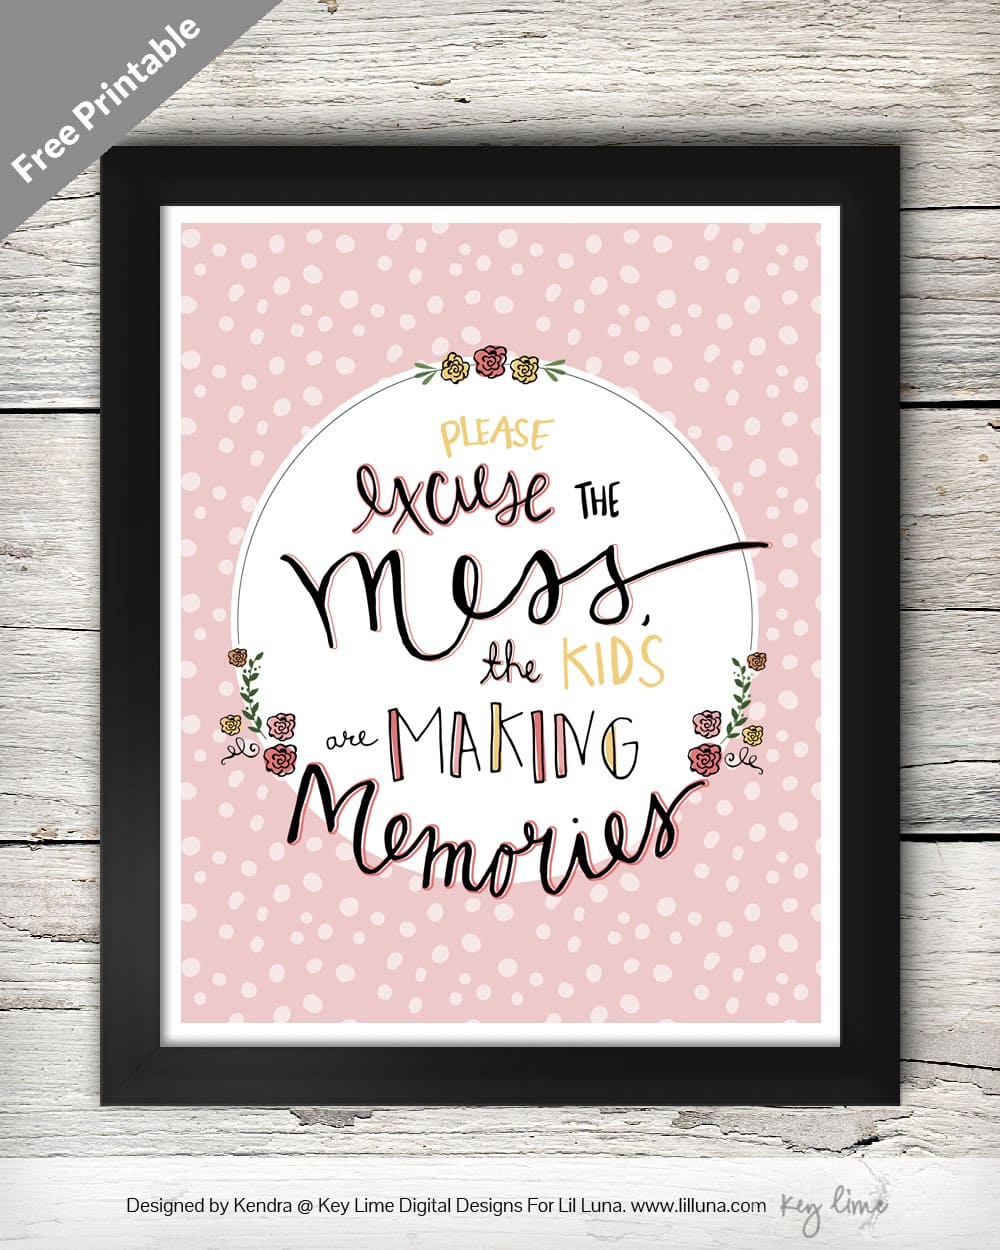 Please excuse the mess, the kids are making memories - LOVE this quote!! Free print and 3 versions on { lilluna.com }